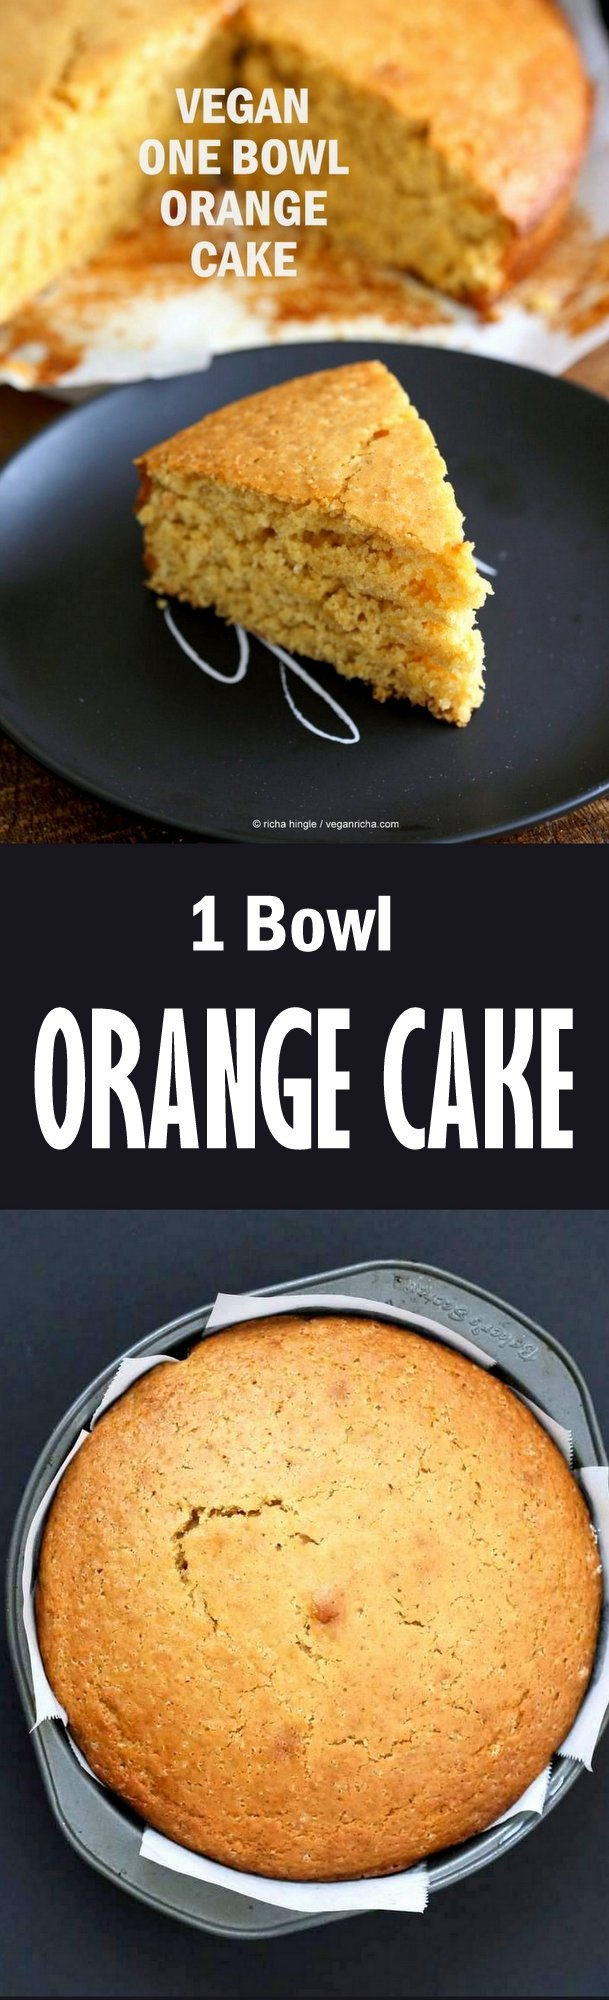 One Bowl Vegan Orange Cake Vegan Richa